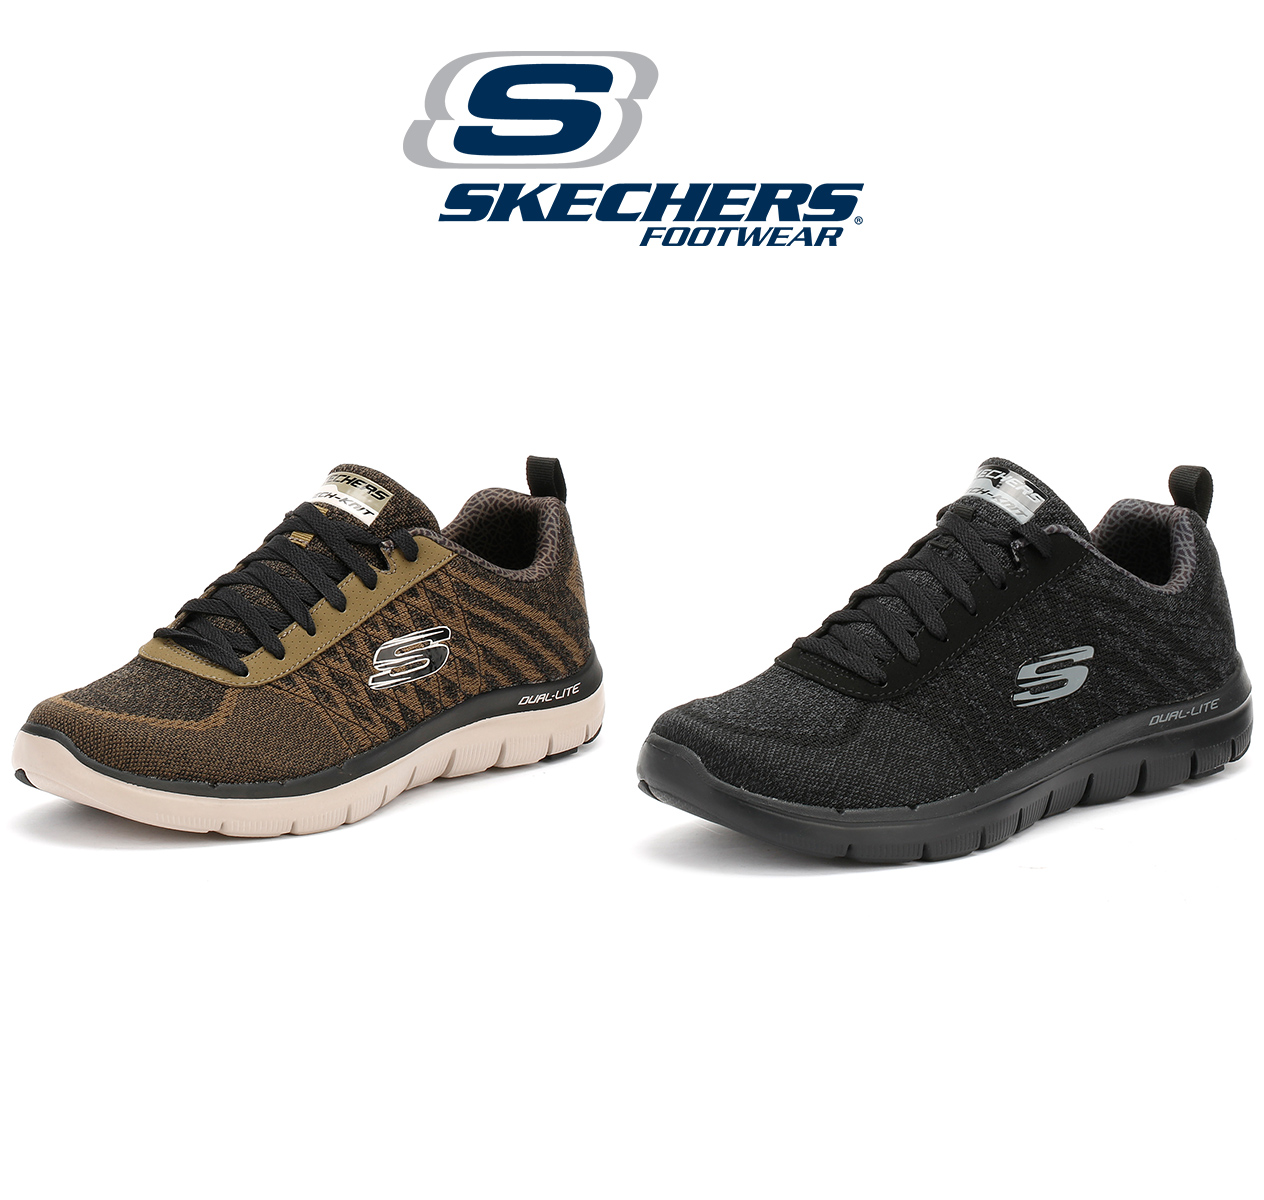 73510598a81 skechers mens trainers cheap > OFF63% The Largest Catalog Discounts